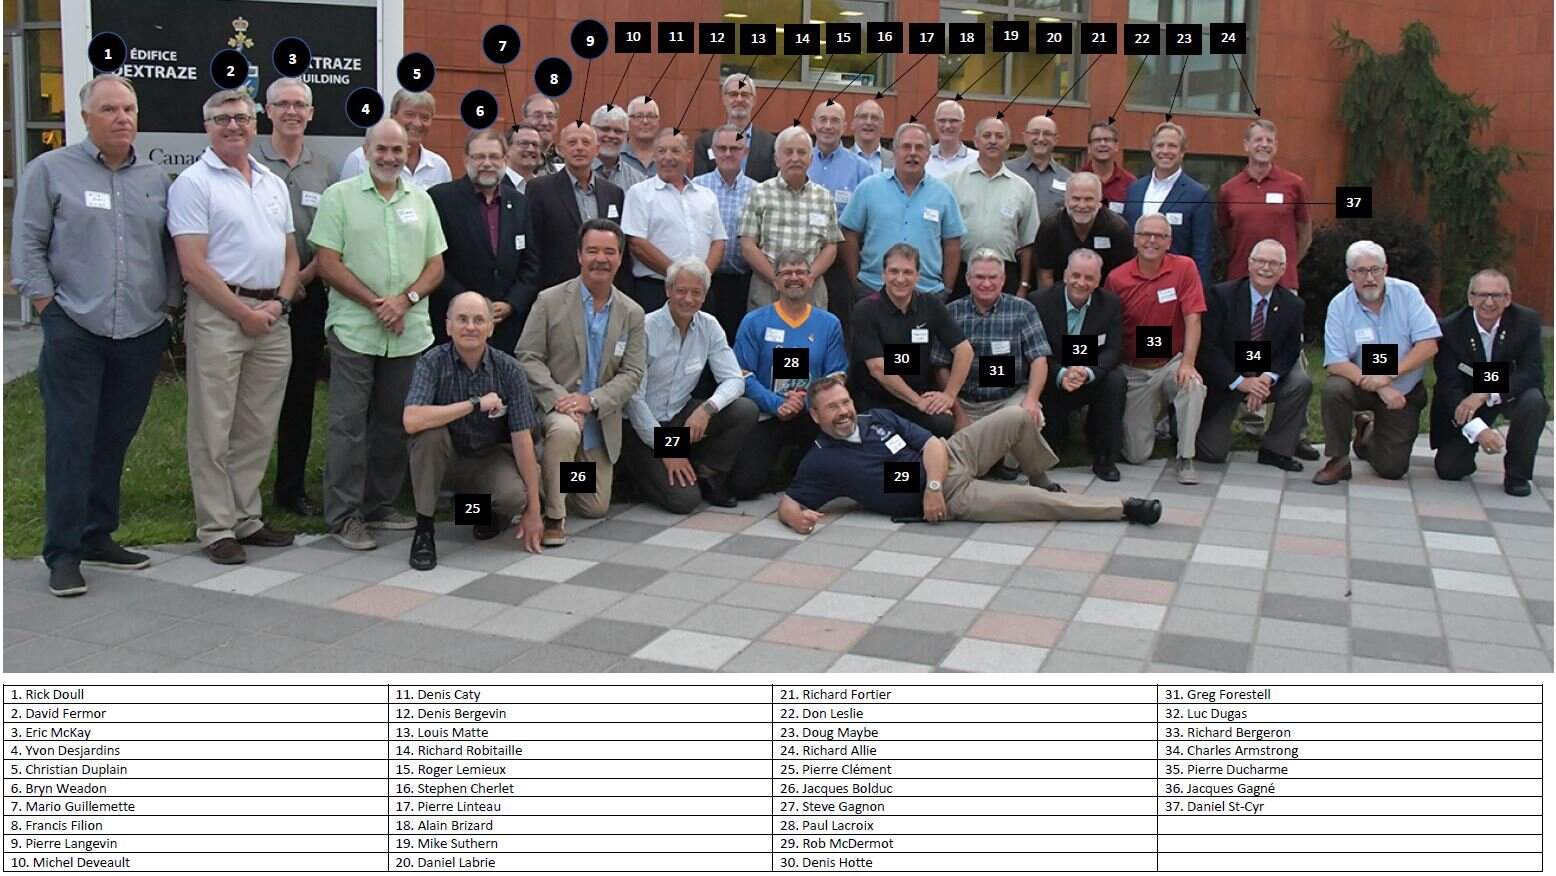 CMR 40th Group outside Dextraze with Names.JPG